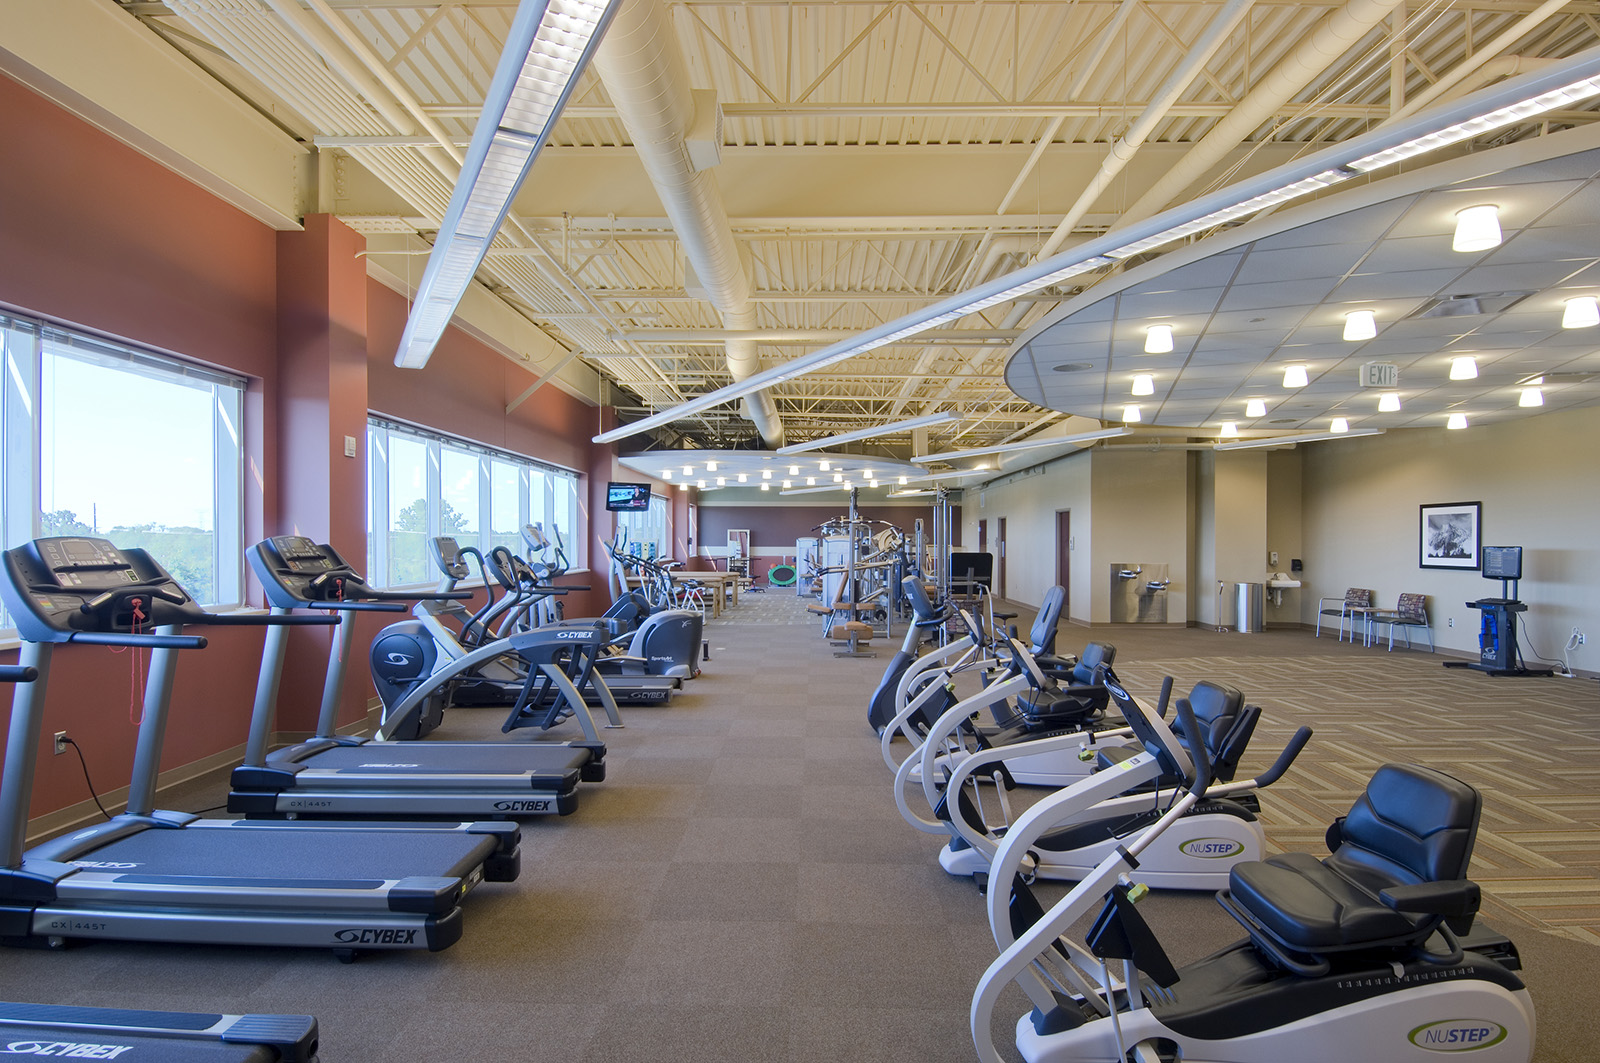 clarkston-medical-building-fitness